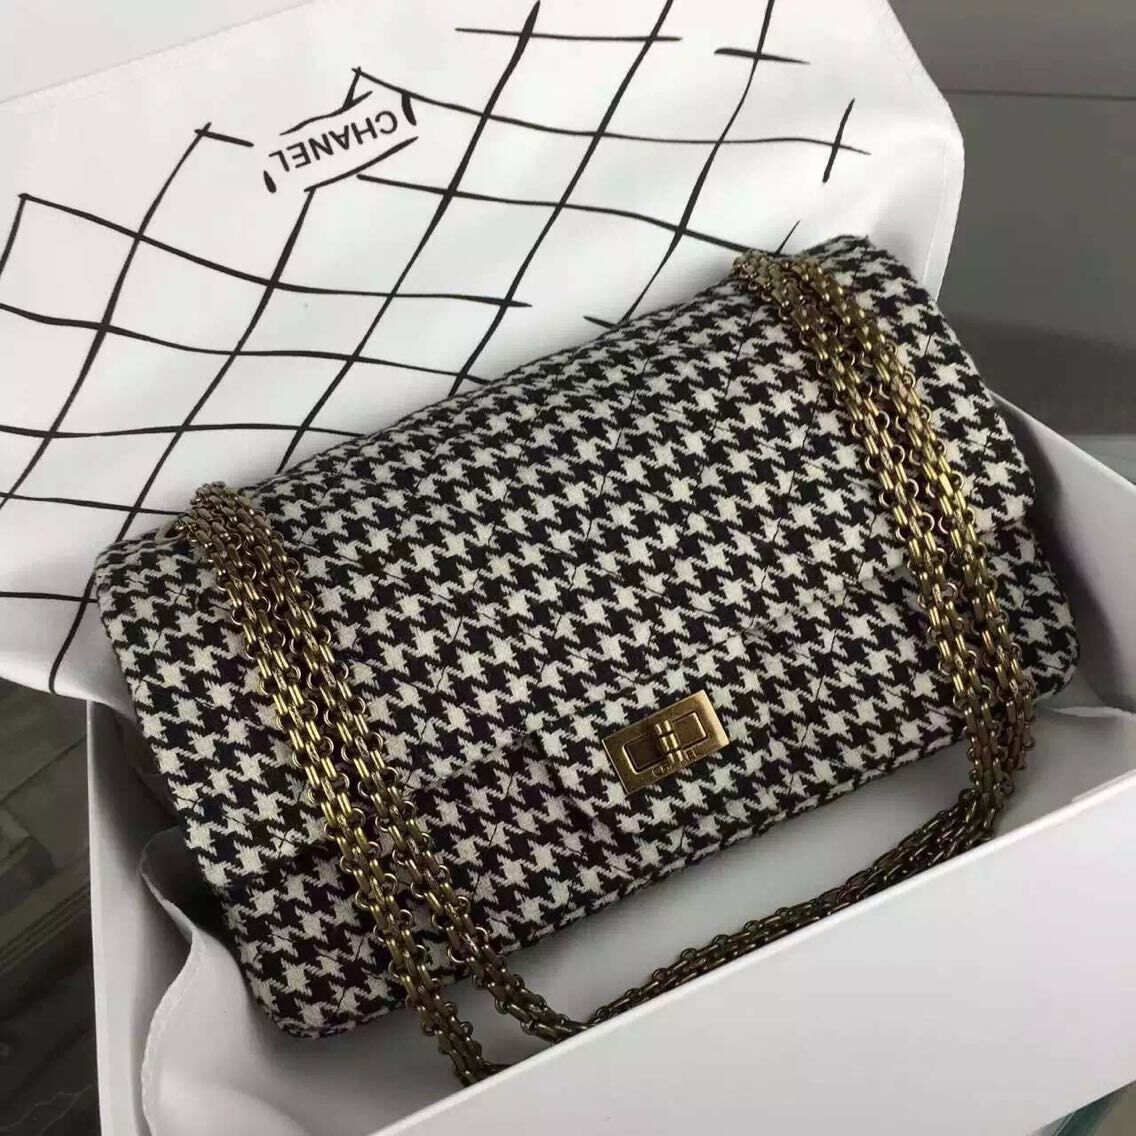 Chanel 2.55 Series Flap Bag Original Fabric A1112 White Grid